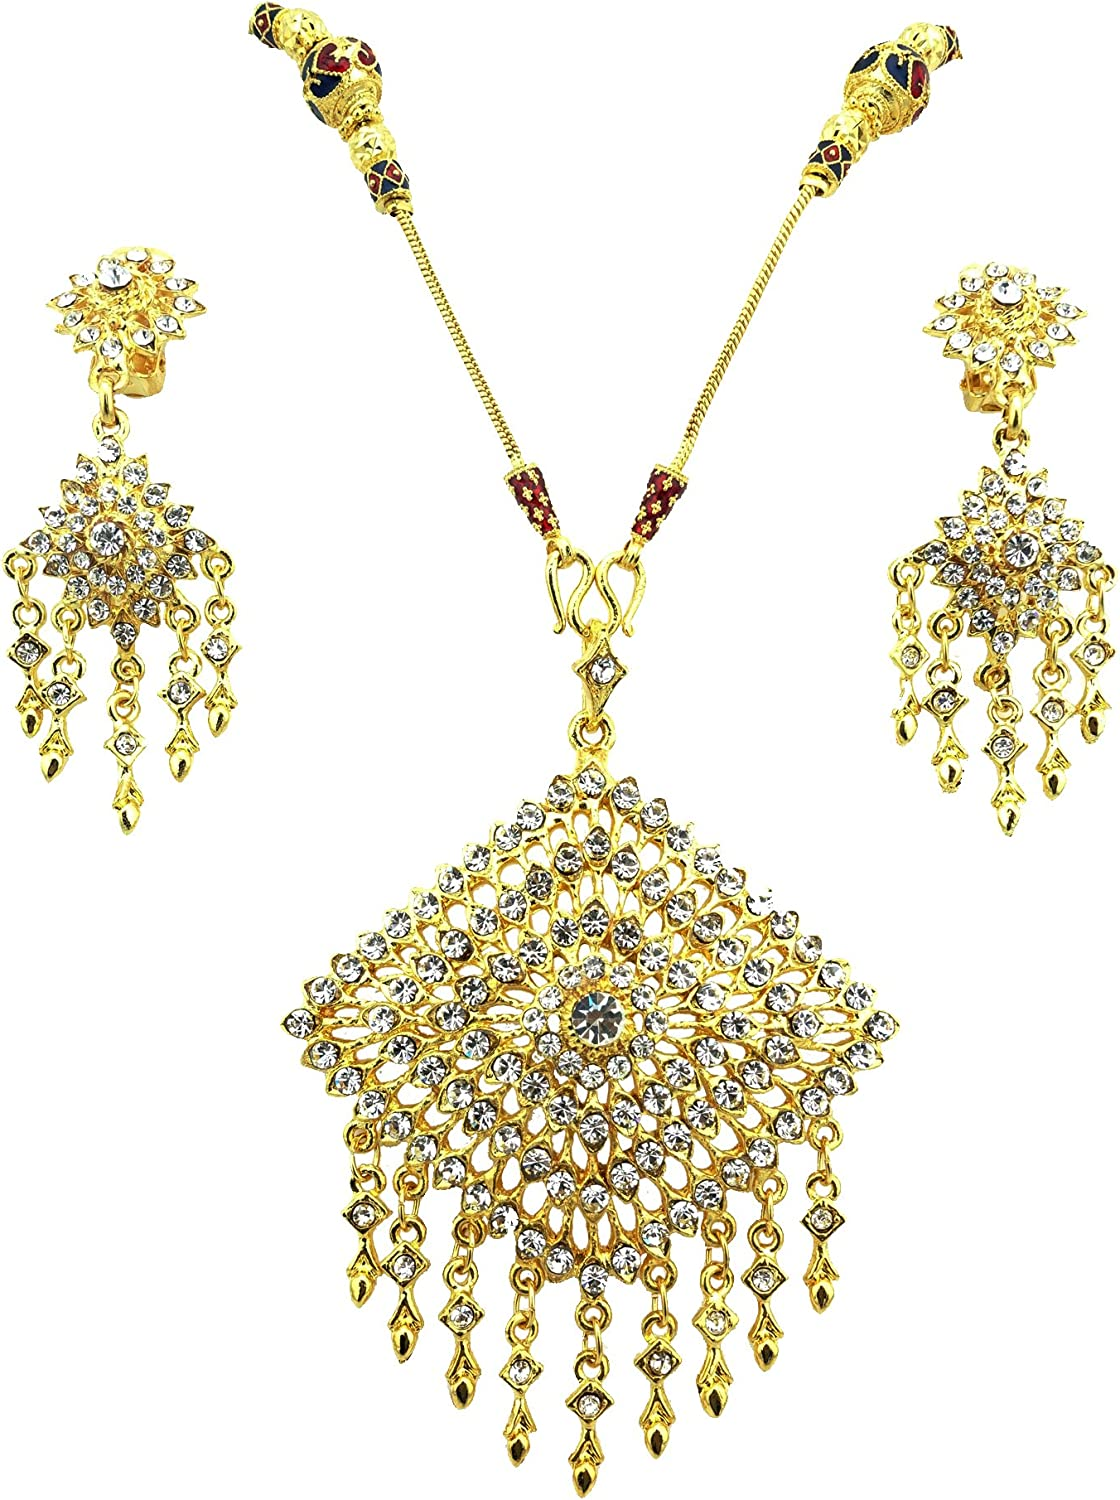 Siwalai Thai Traditional Sukhothai Style Gold Plated Clear Crystals Necklace Earrings Jewelry Set 24